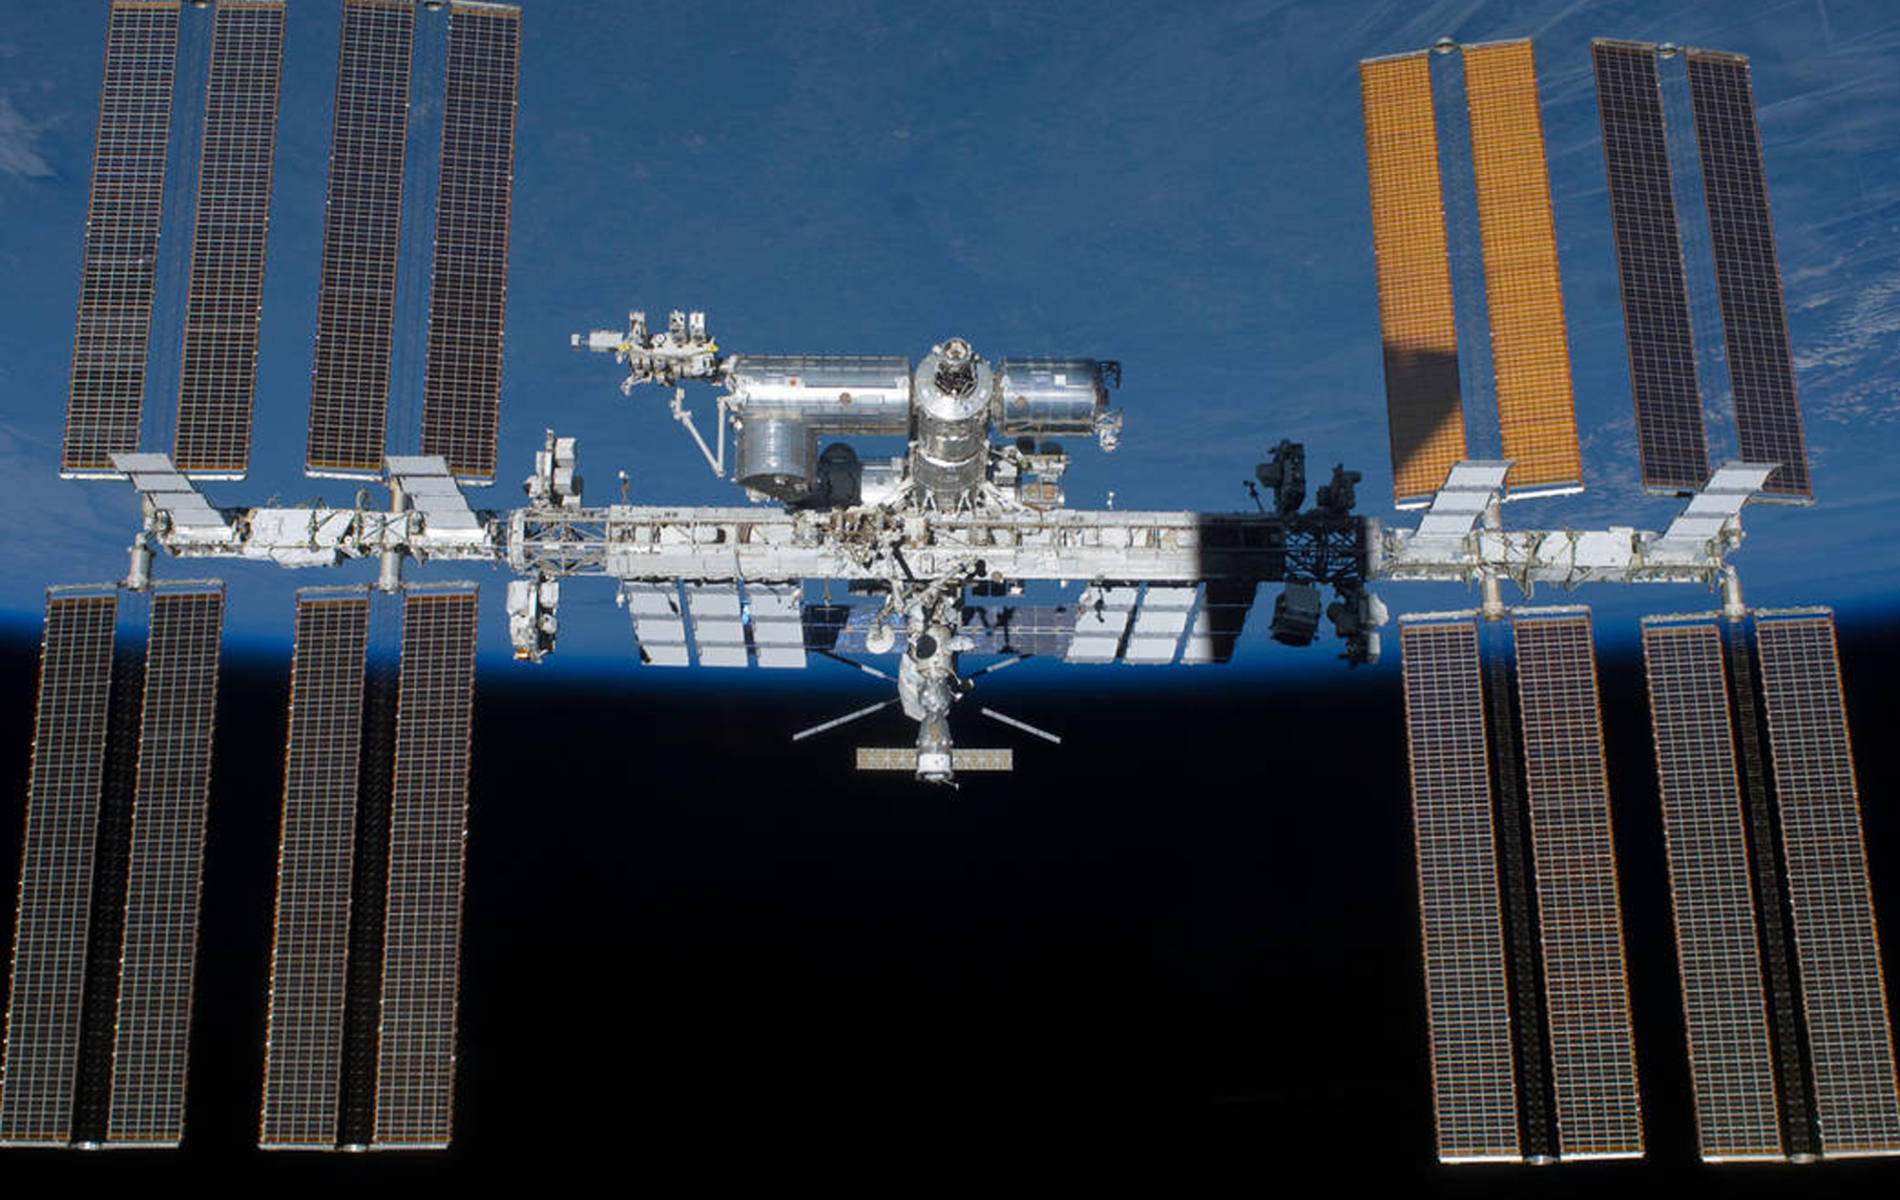 Trump administration wants to privatize International Space Station: report